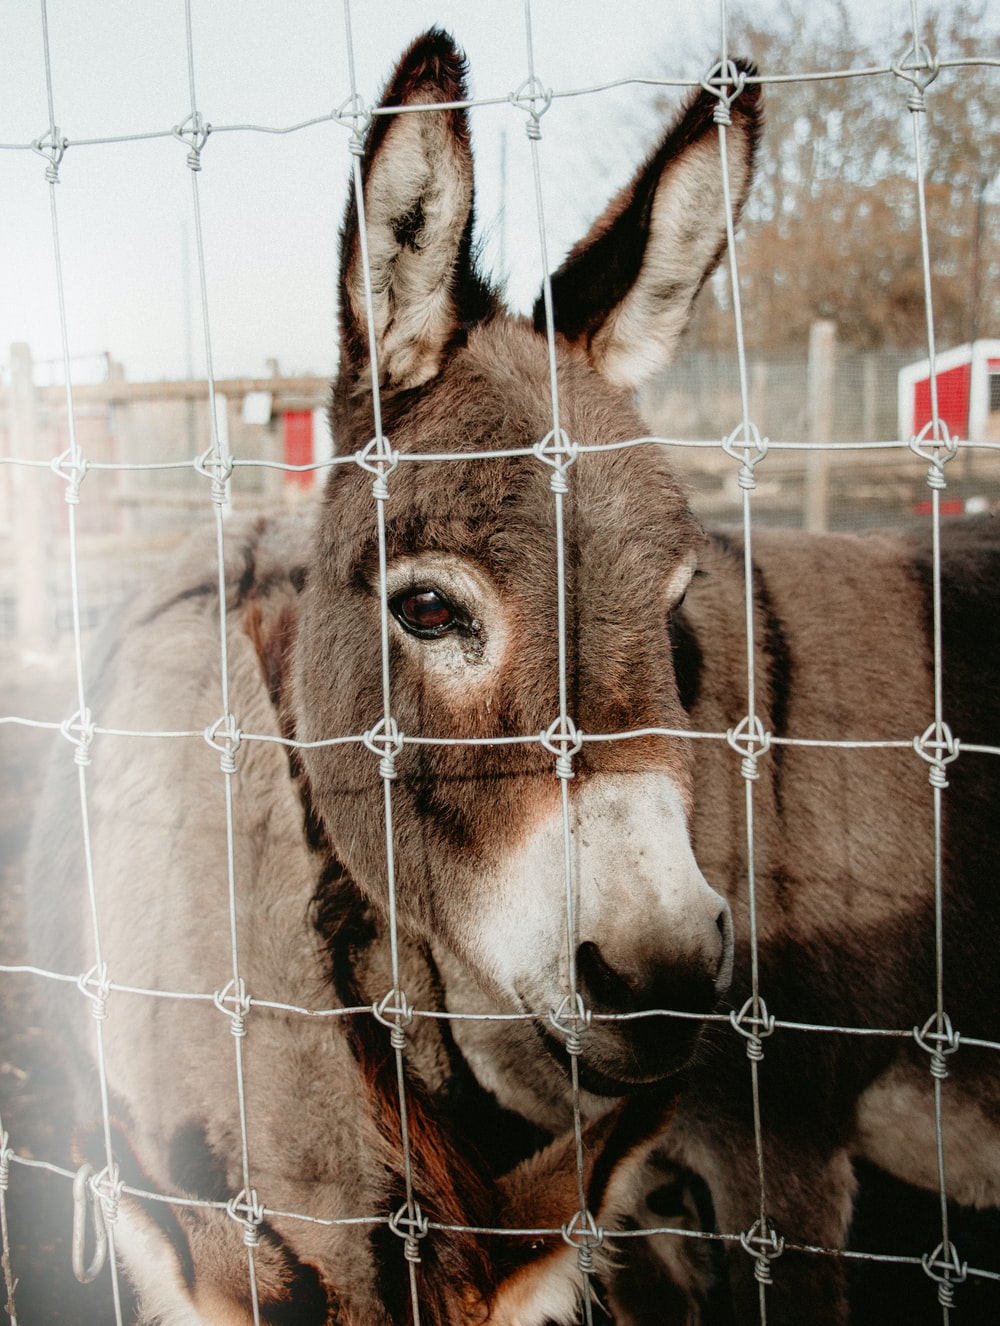 donkey in cage